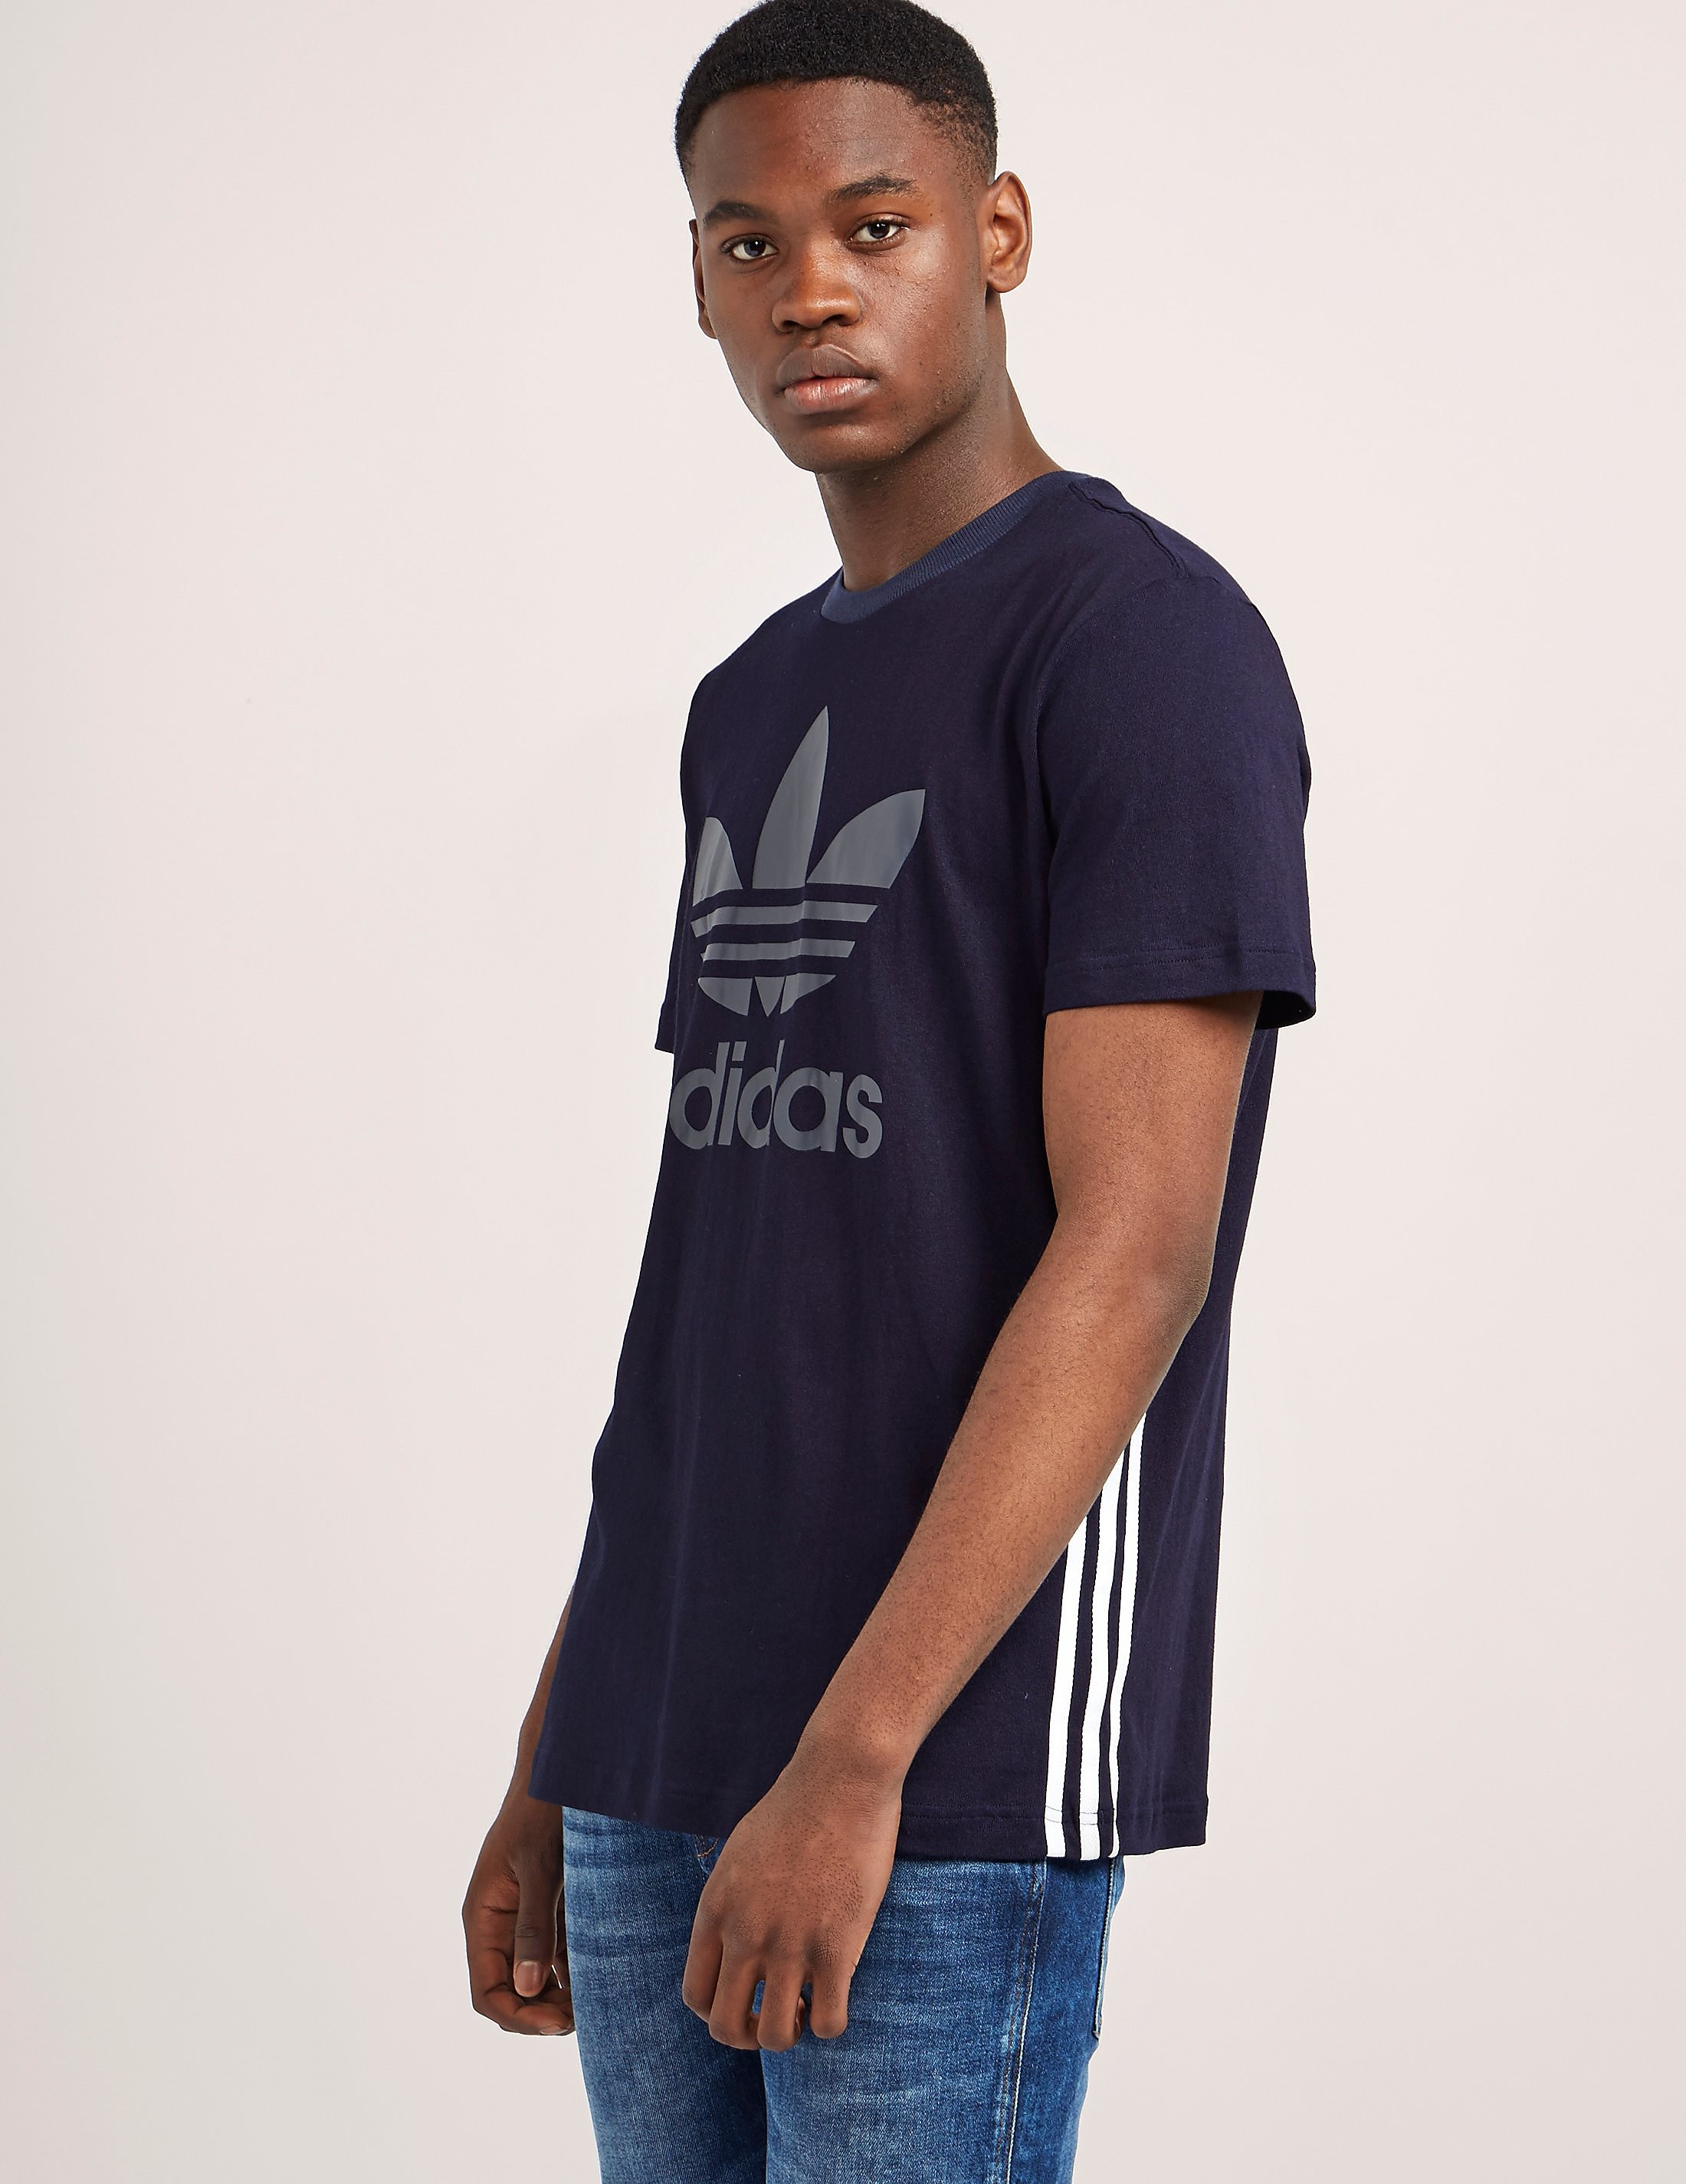 adidas Originals Logo Short Sleeve T-Shirt